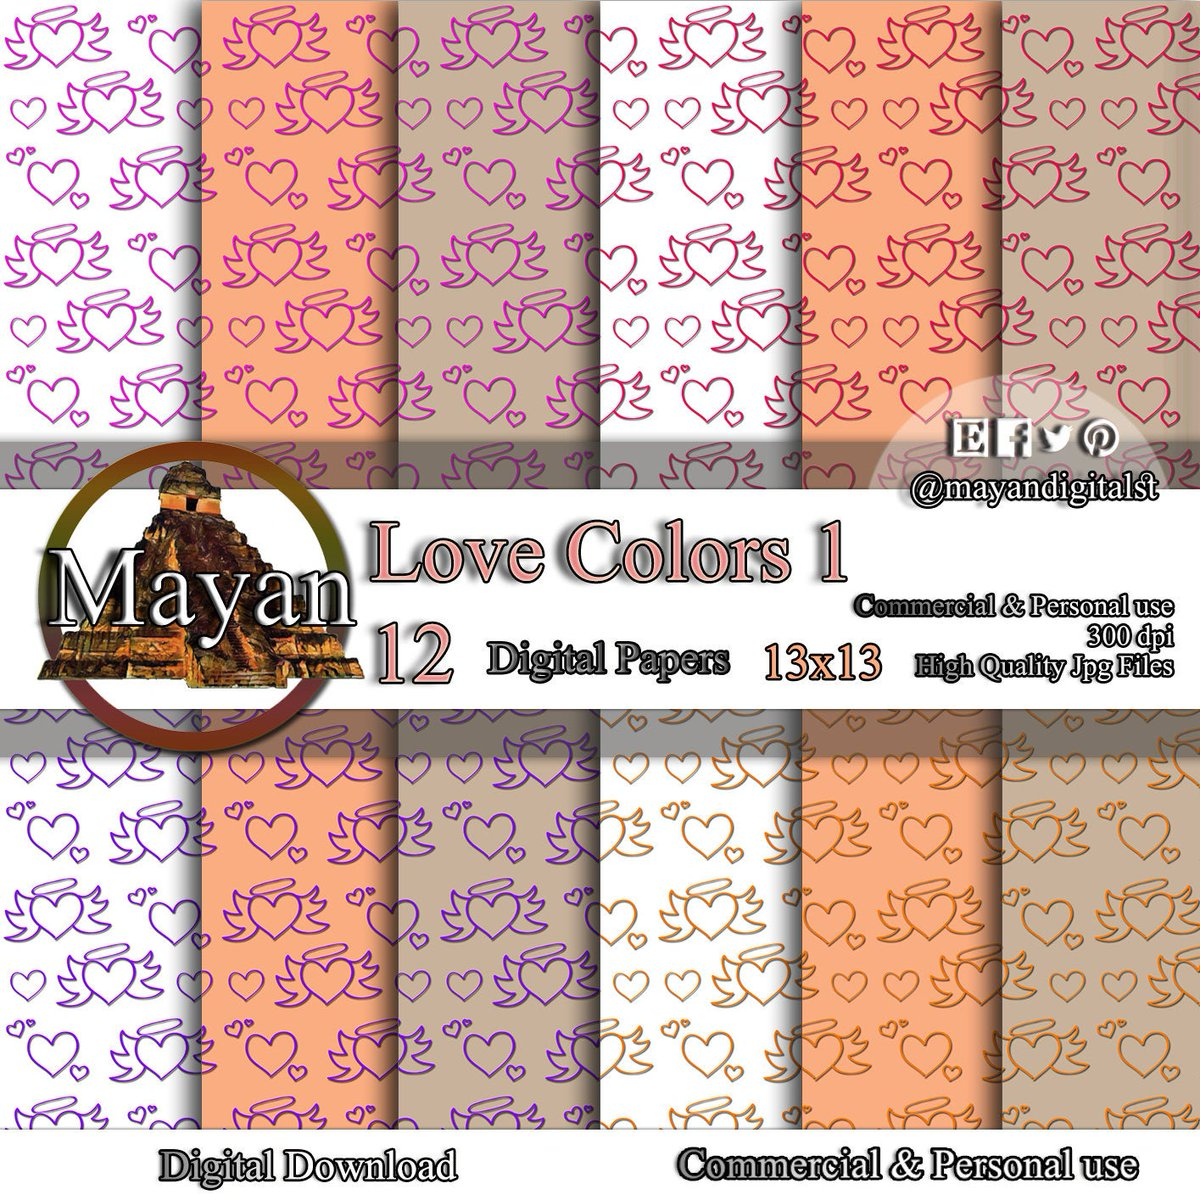 Excited to share the latest addition to my #etsy shop: Love digitized, love digital paper, heart digital print, love heart wall art, digital love, hearts digital paper, love digital background,  #quinceanerasweet16 #valentinesday #lovefriendship